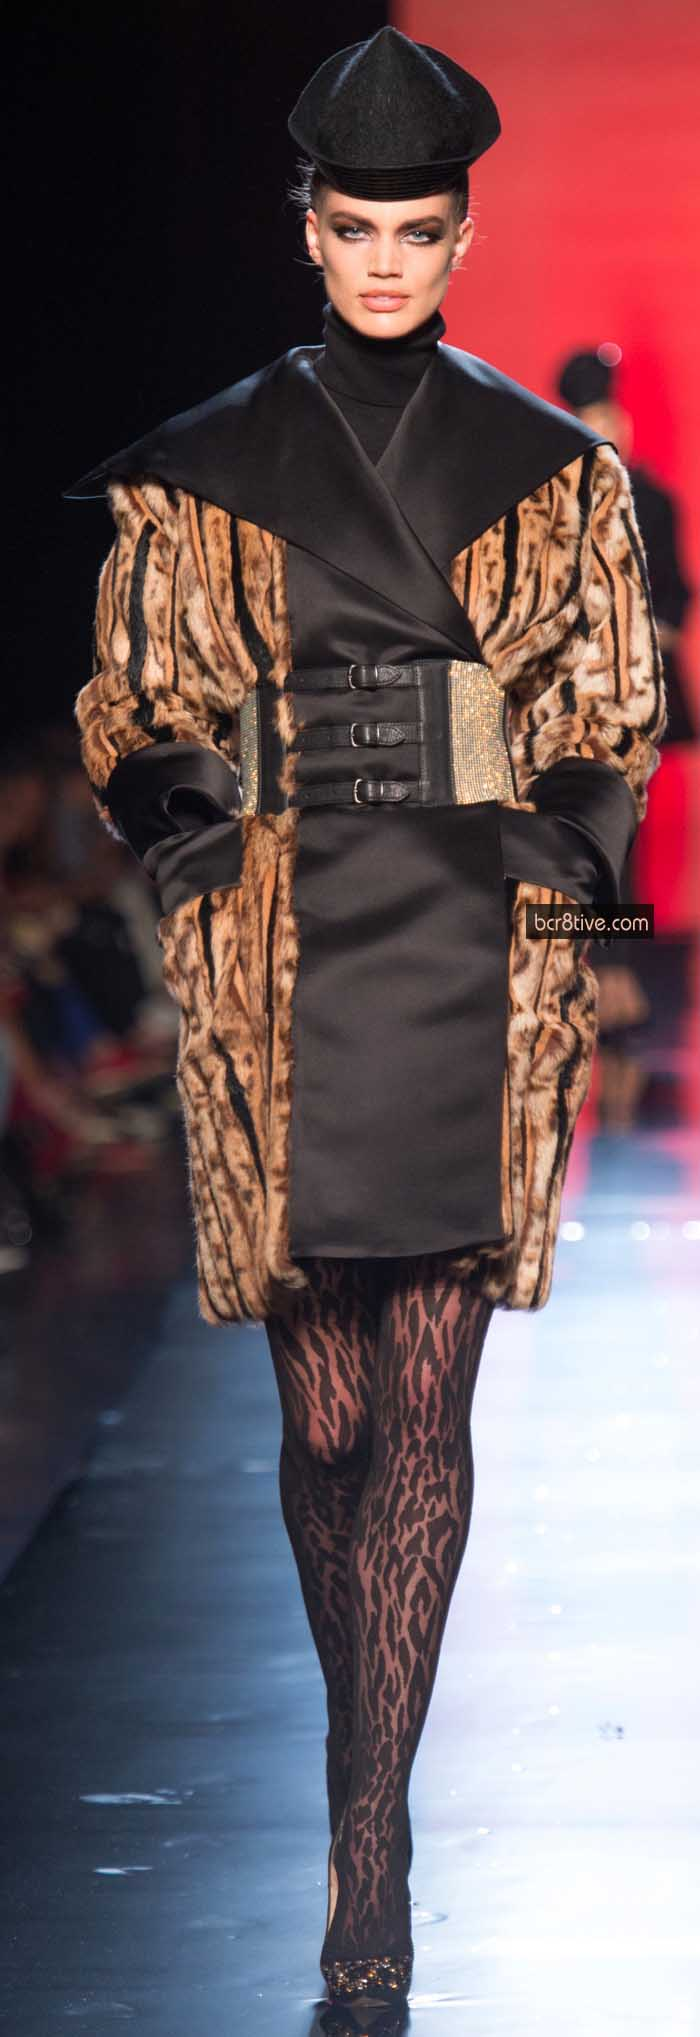 Jean Paul Gaultier Fall Winter 2013-14 Haute Couture